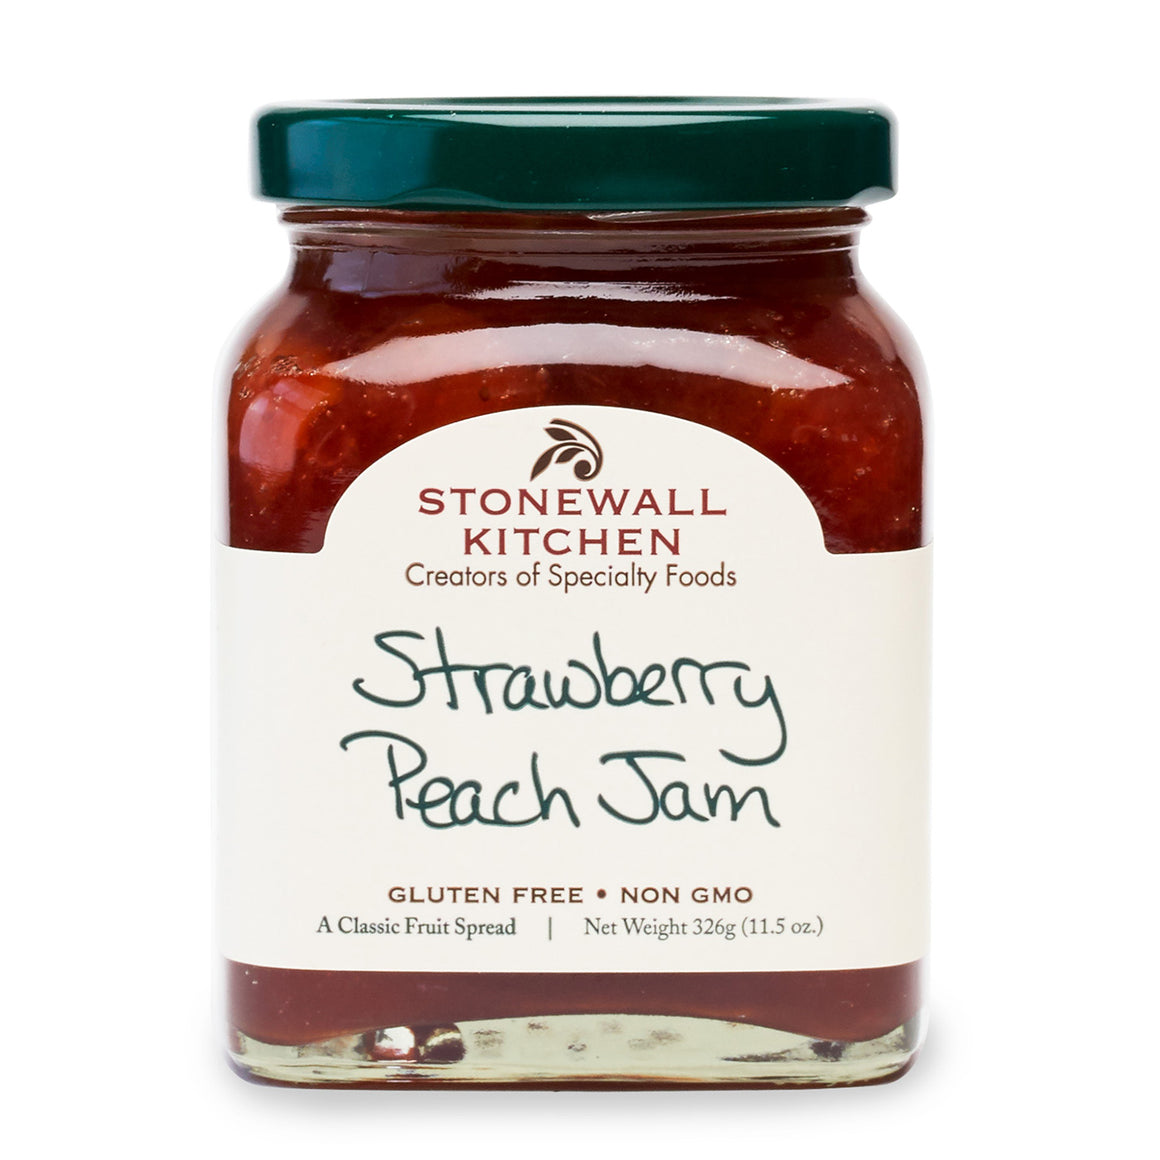 Strawberry Peach Jam by Stonewall Kitchen